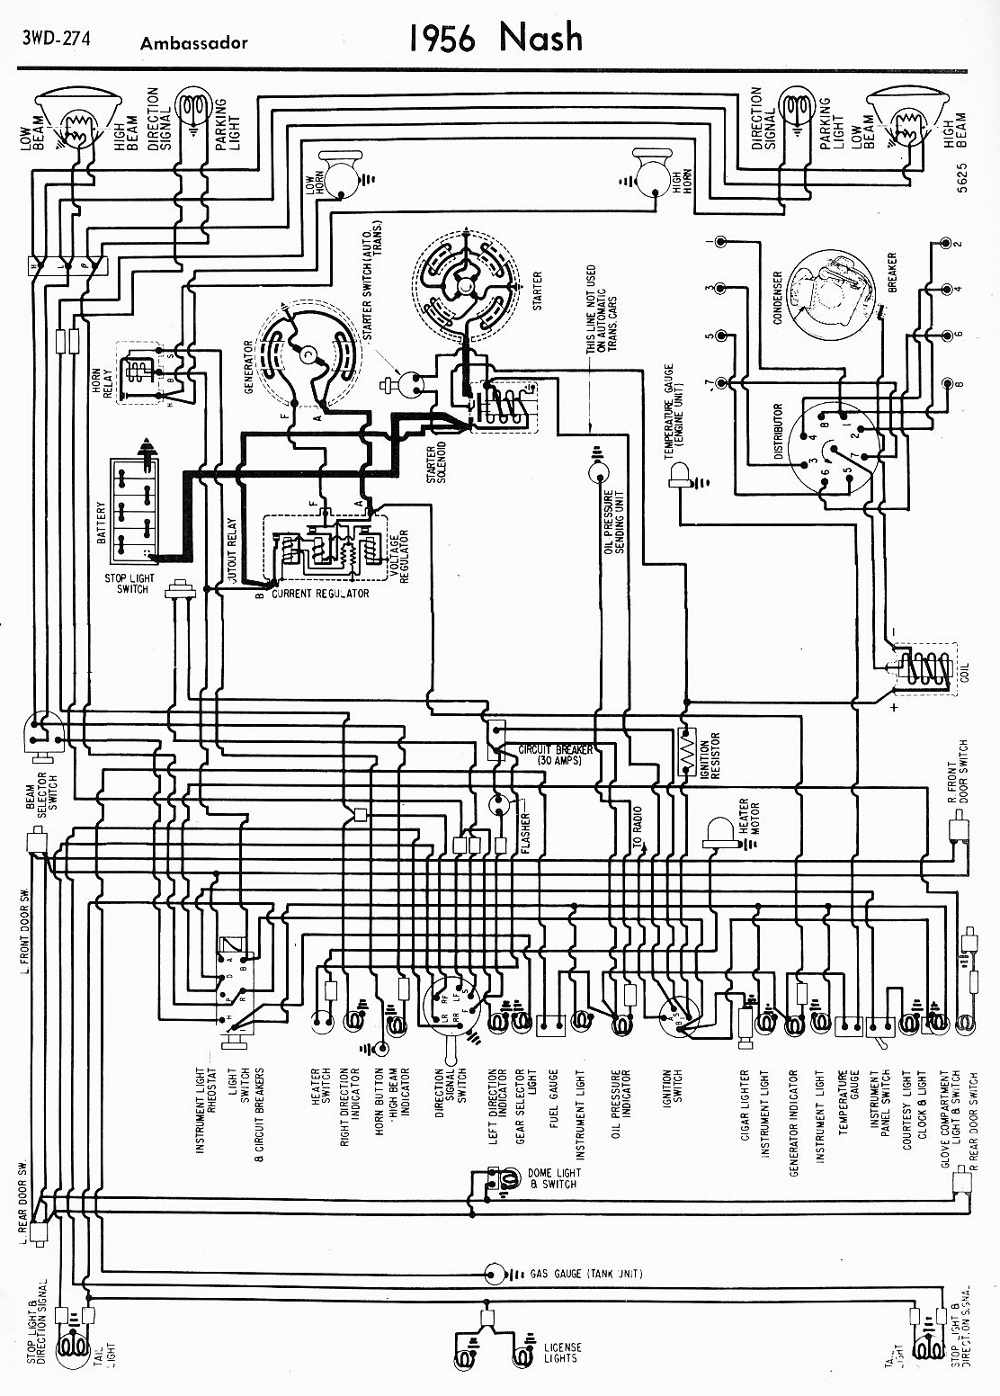 1950 Cadillac Wiring Diagram Library 1963 Spark Plug Wire 1951 Diagrams U2022 1940 1965